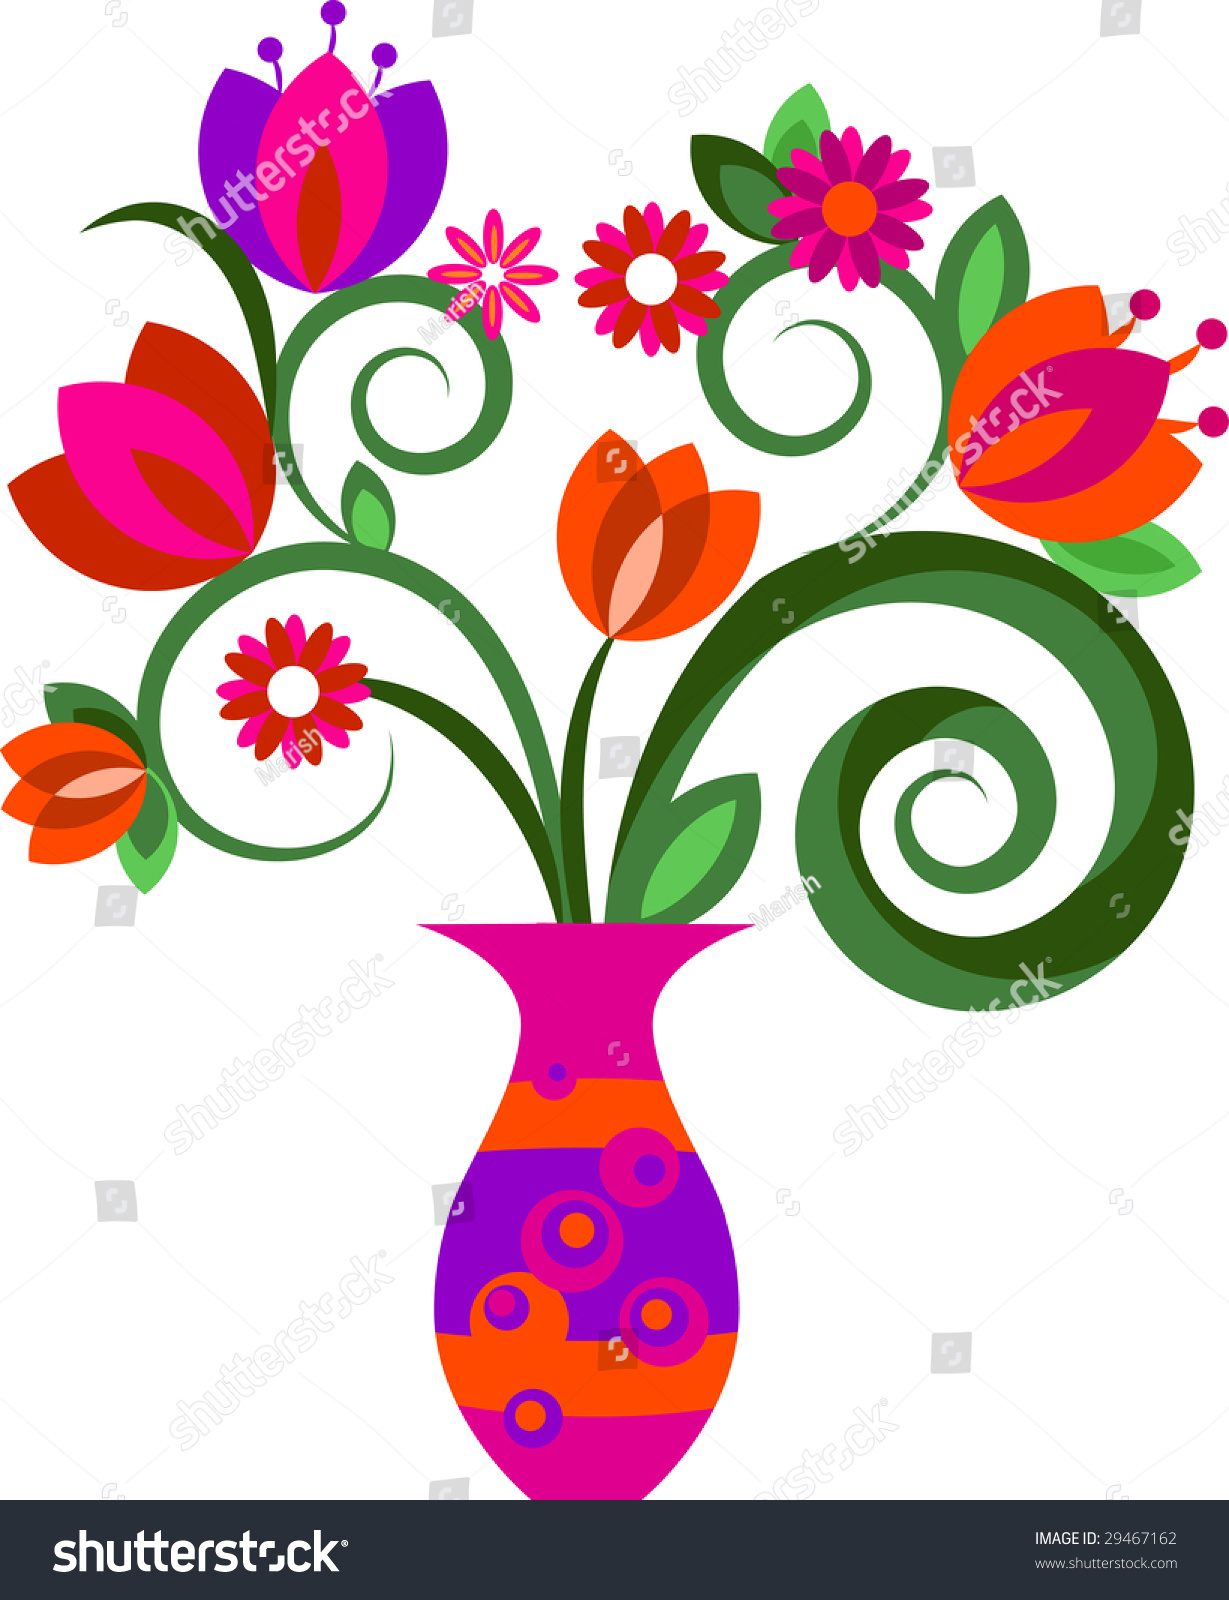 decorative flowers in a vase - Decorative Flowers